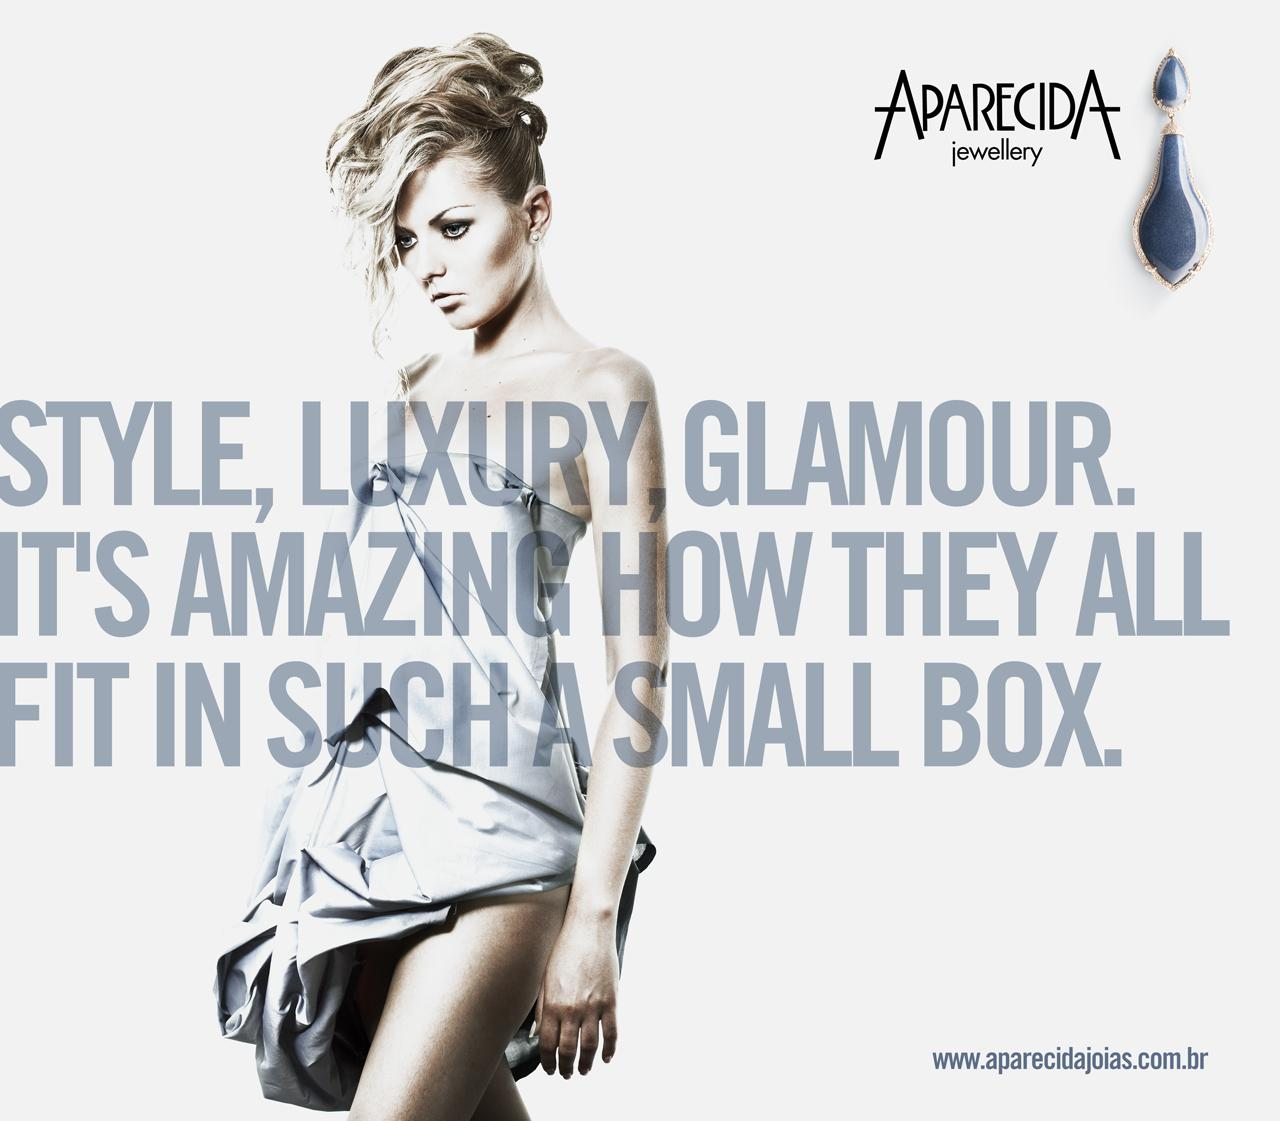 Aparecida Jewellery Print Ad -  Small box